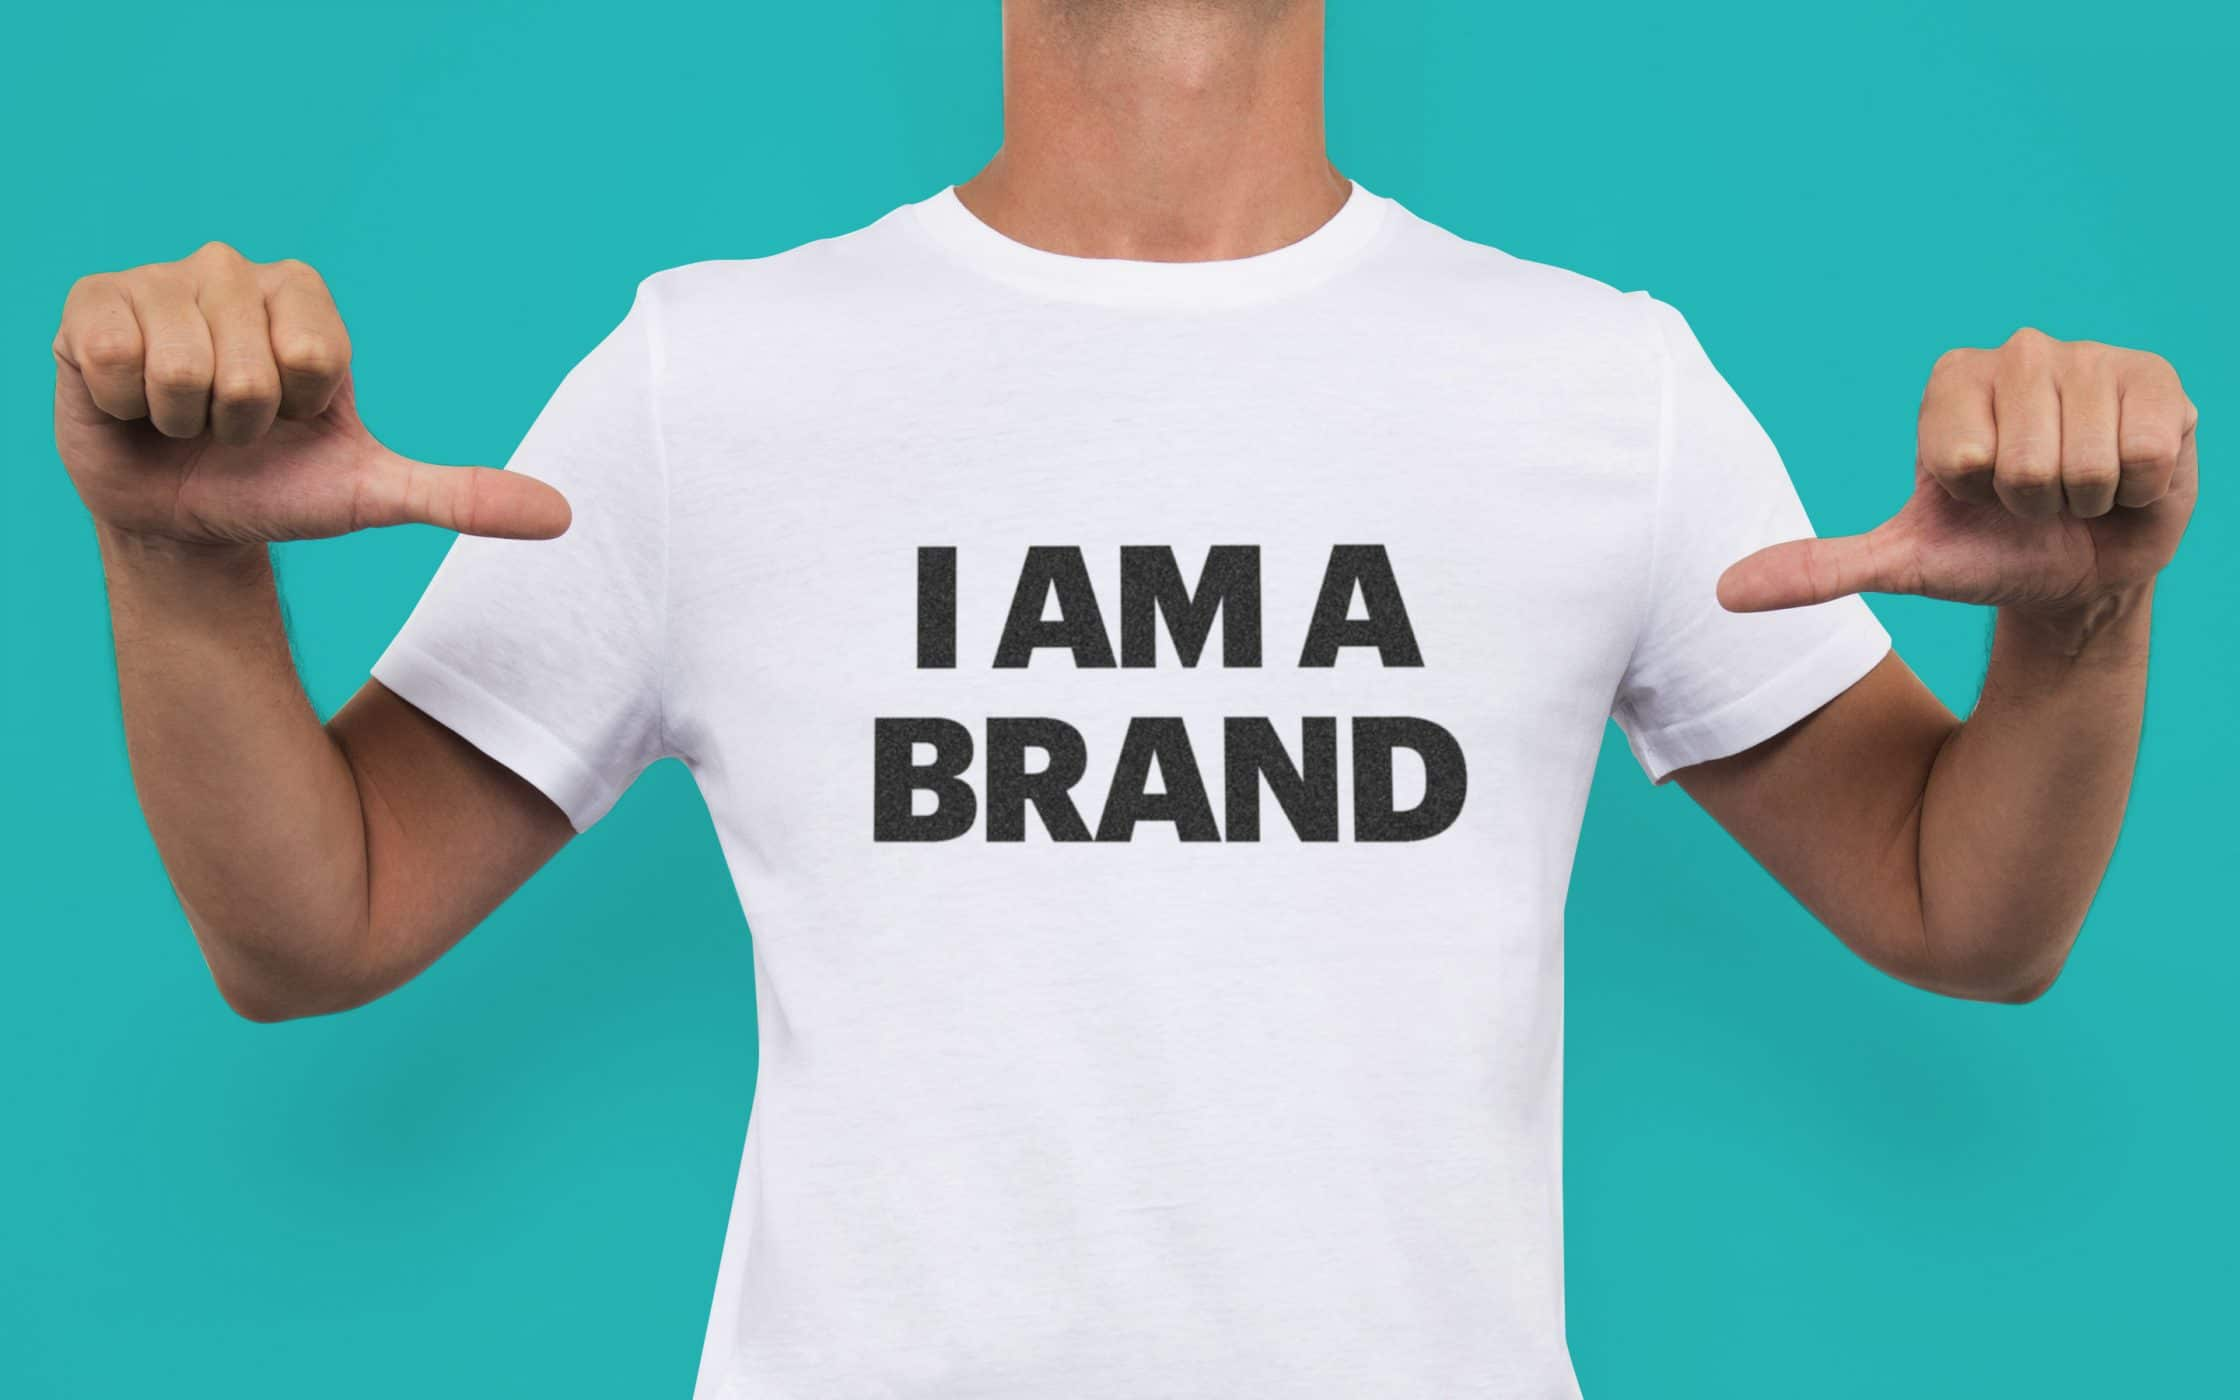 Personal Branding Is Here To Stay!